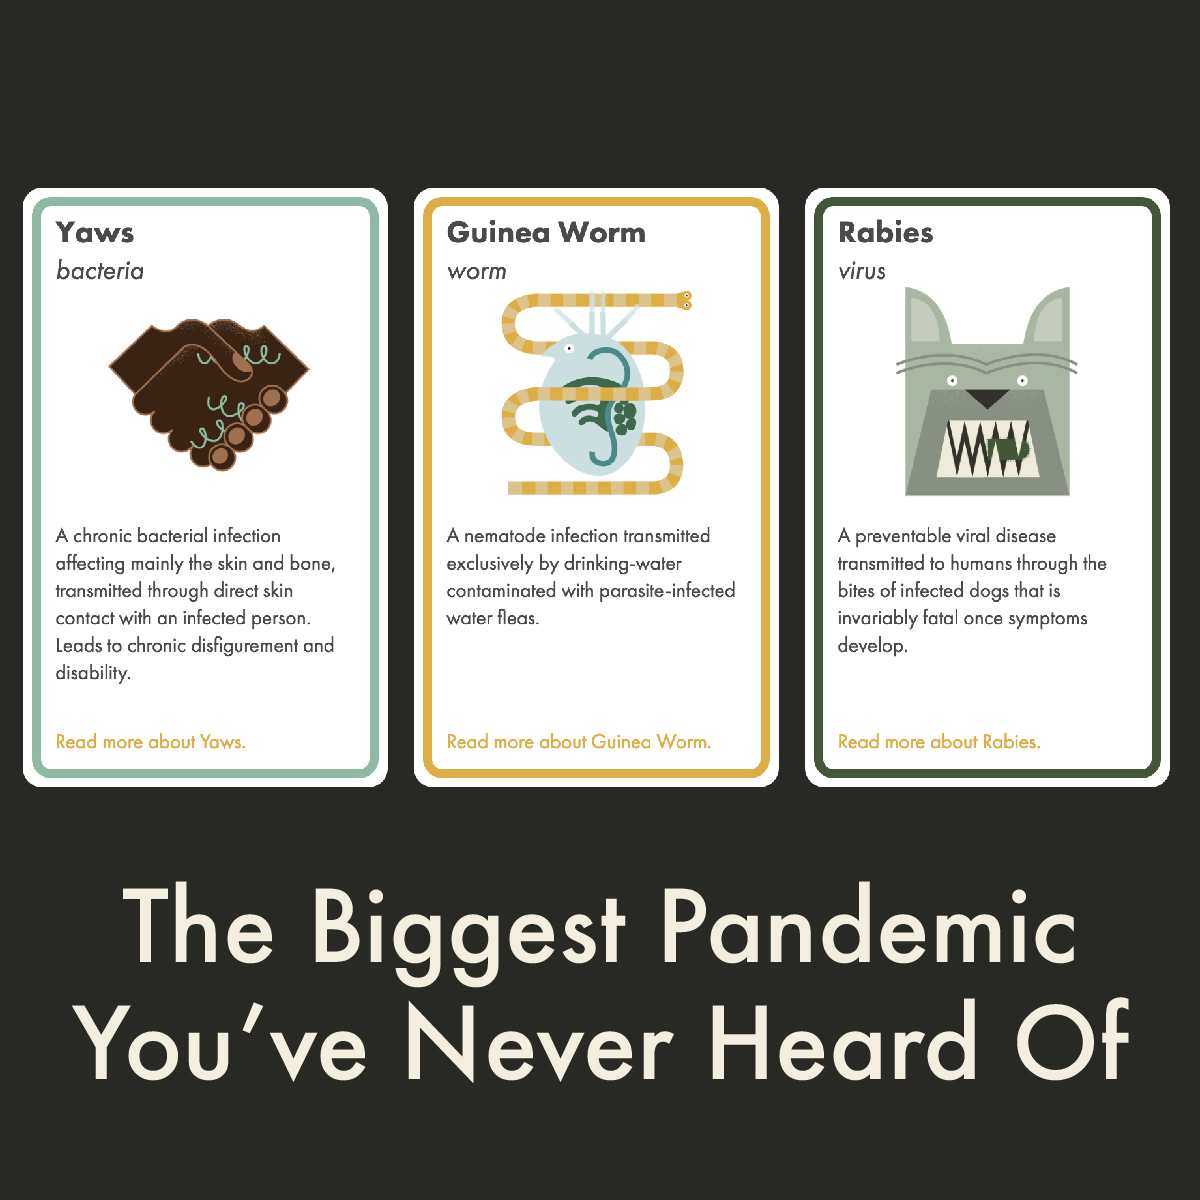 The Biggest Pandemic You've Never Heard Of